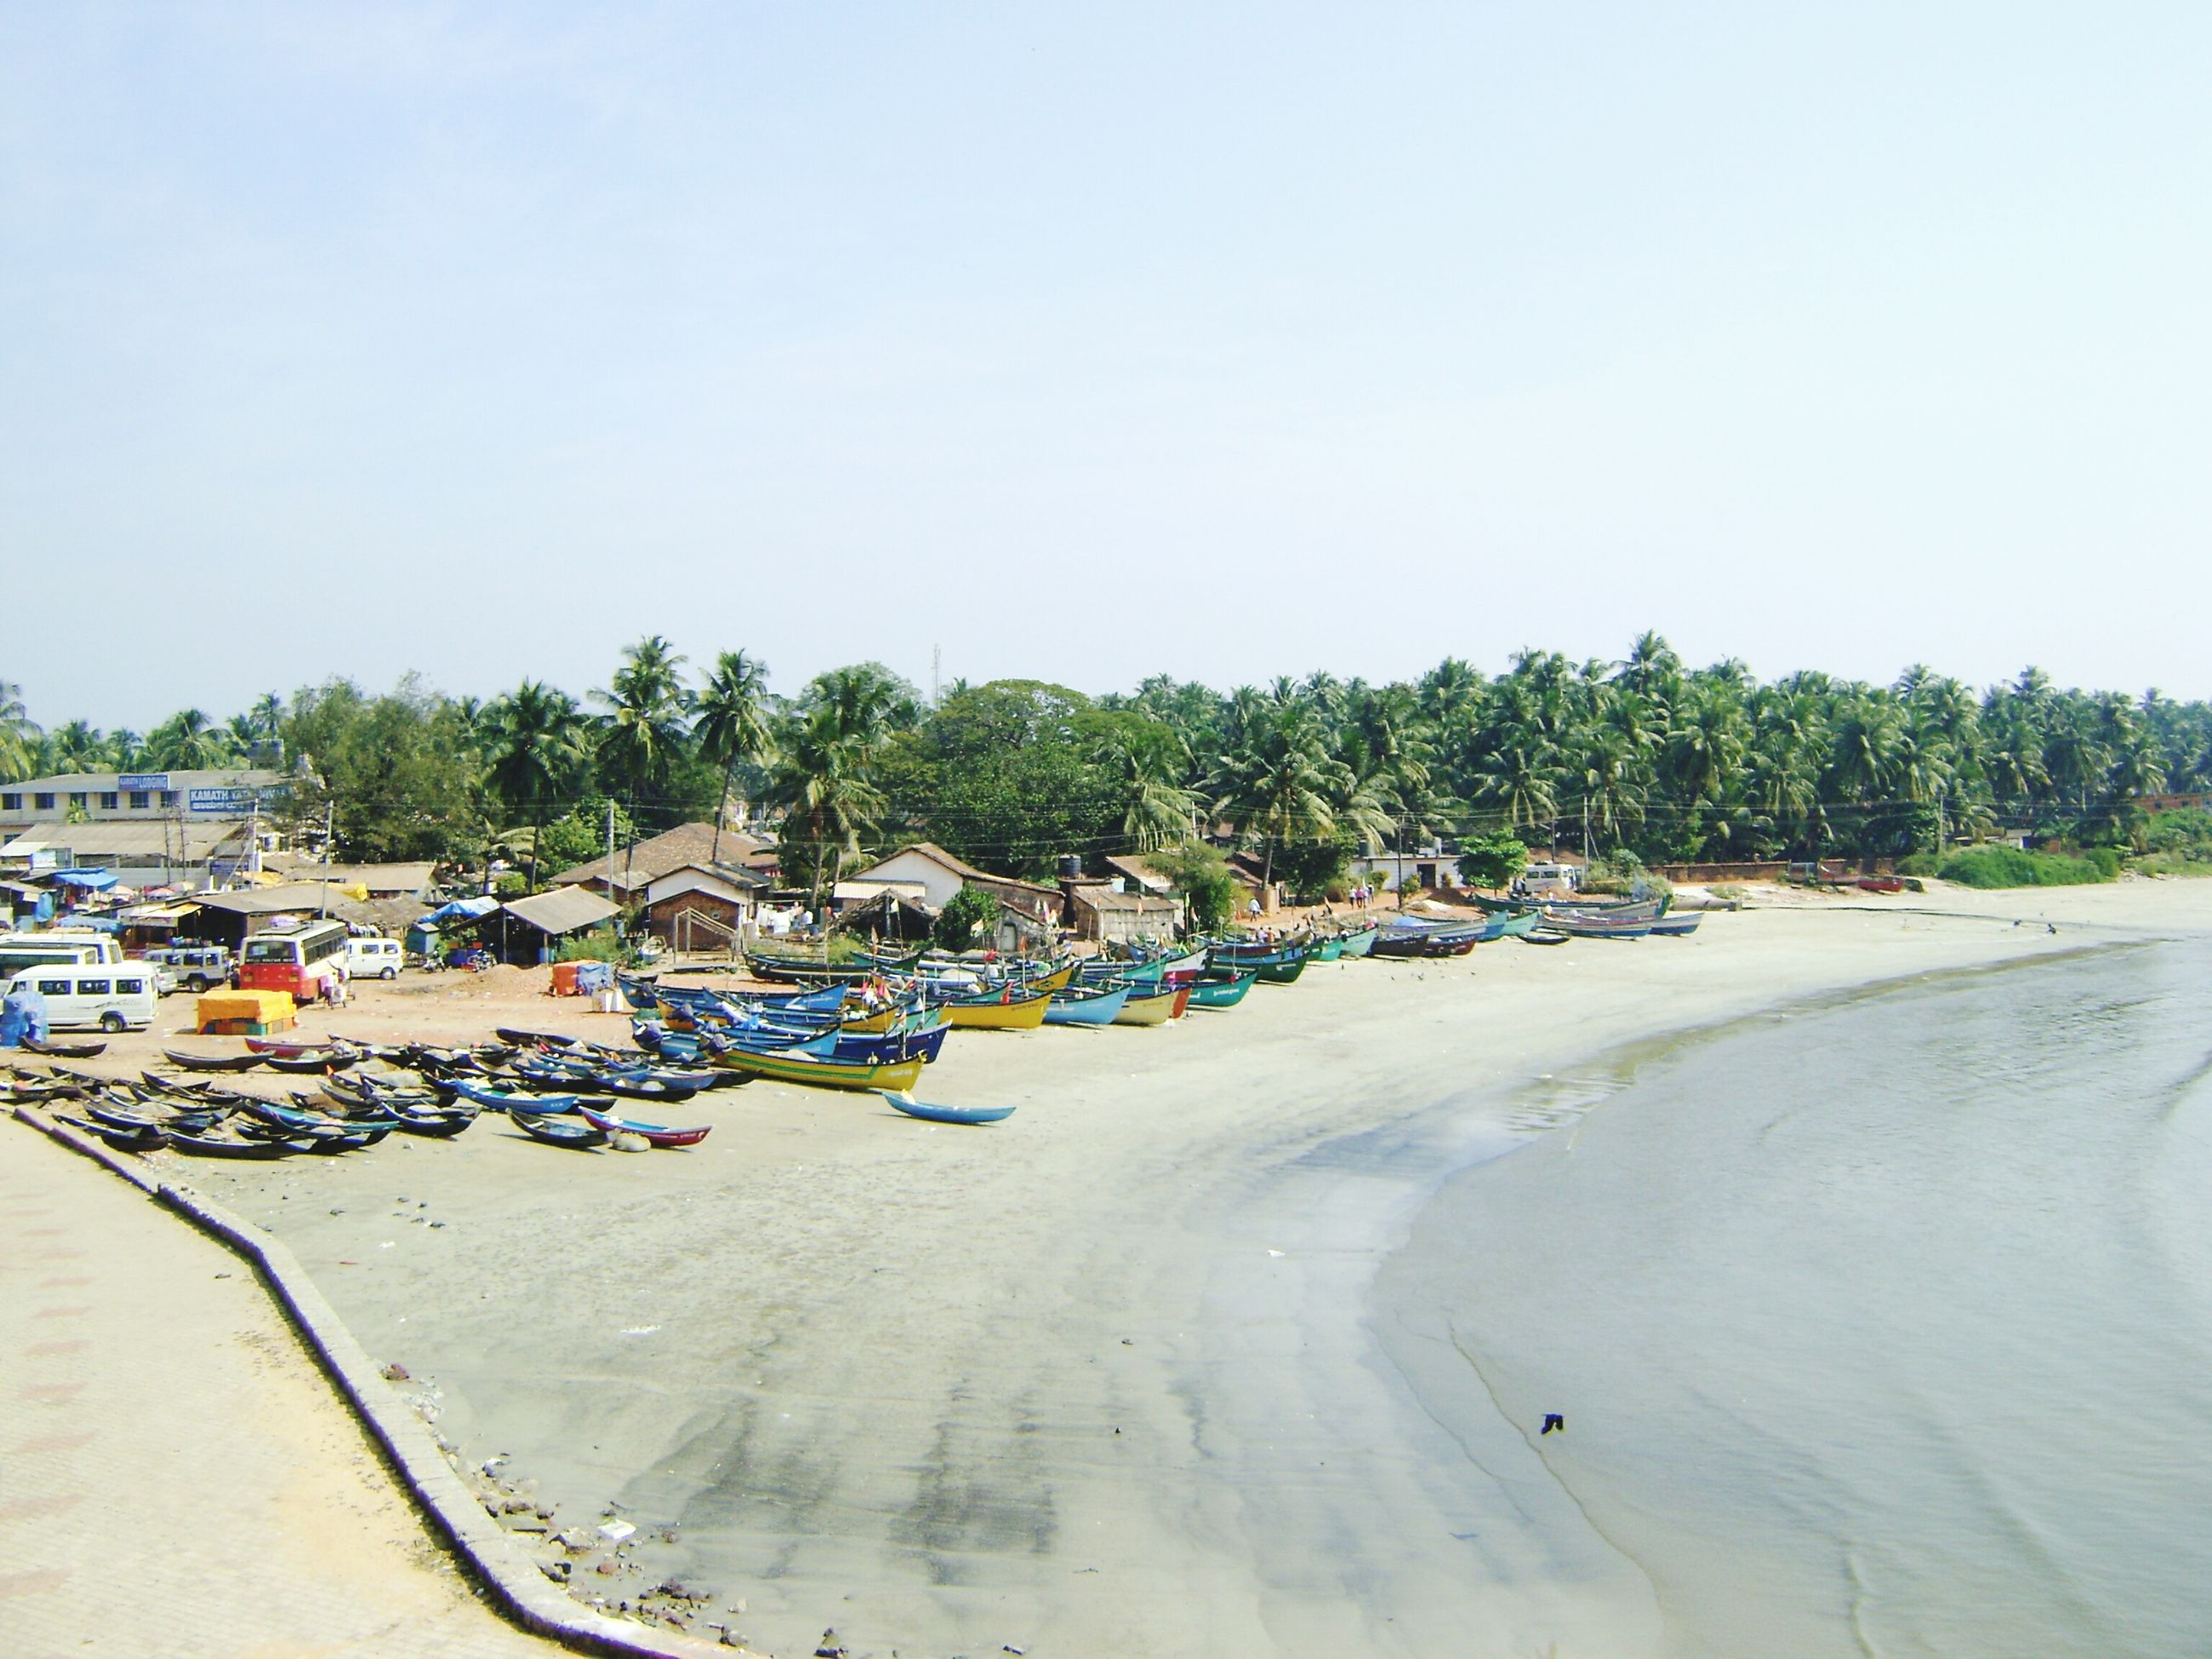 beach, sand, clear sky, copy space, transportation, shore, tranquility, tranquil scene, sea, nature, day, tree, in a row, sky, outdoors, water, scenics, beauty in nature, moored, no people